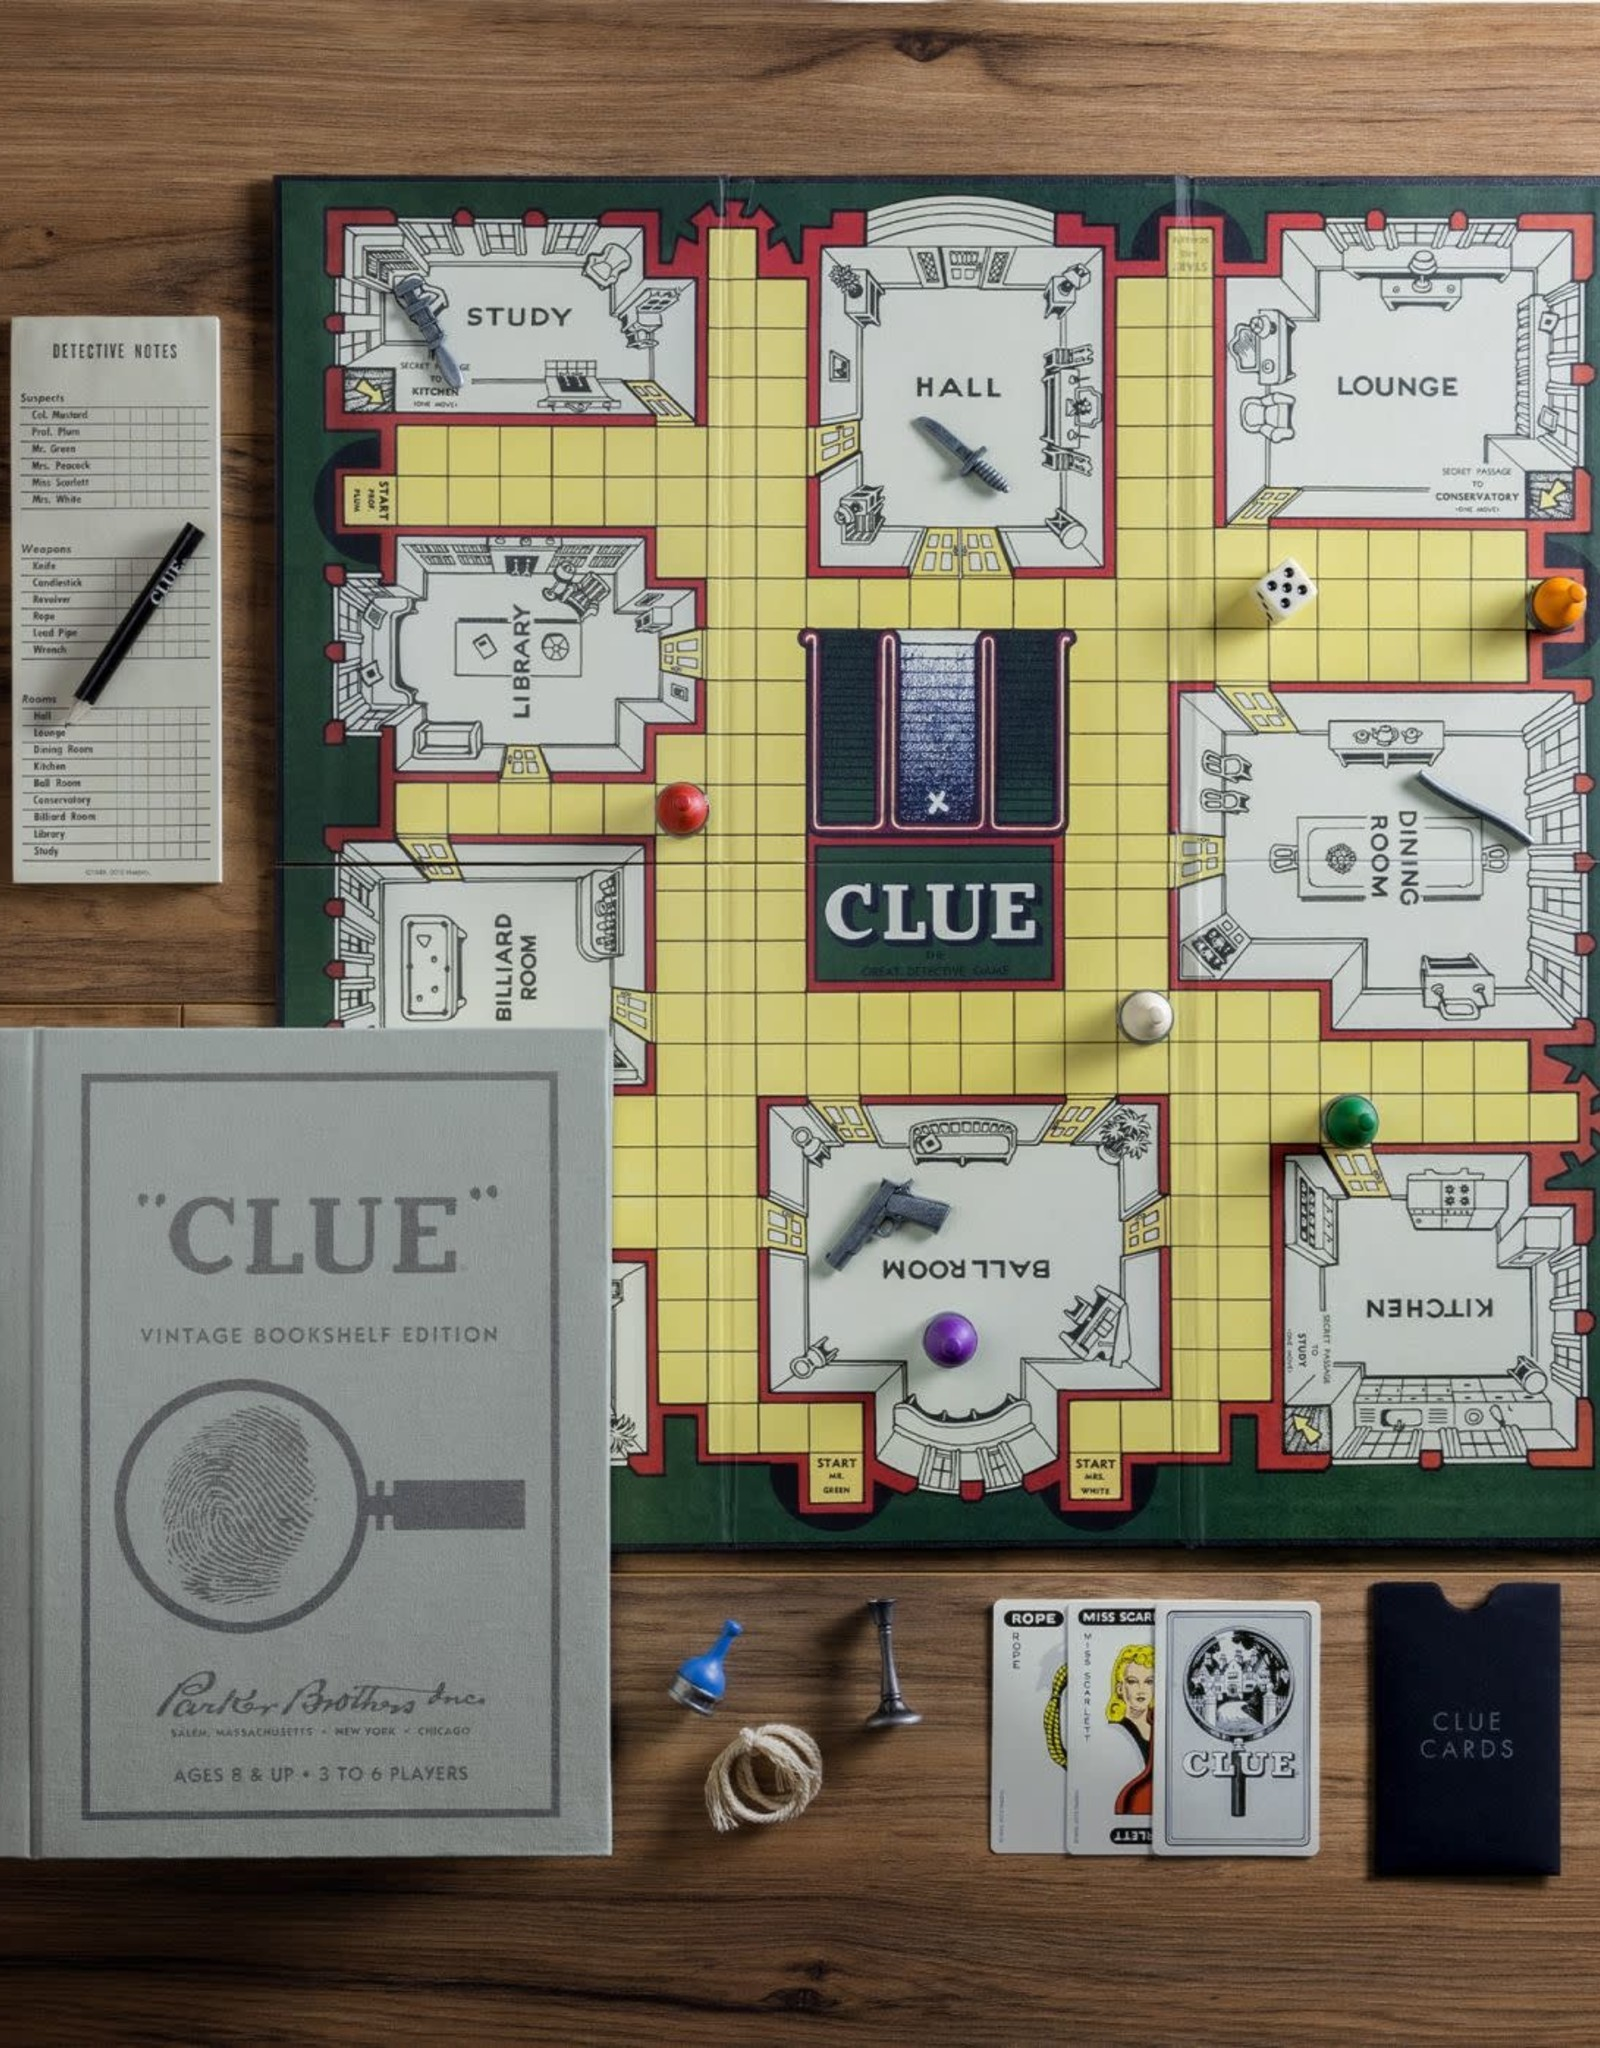 WS Games Clue Vintage Bookshelf Edition